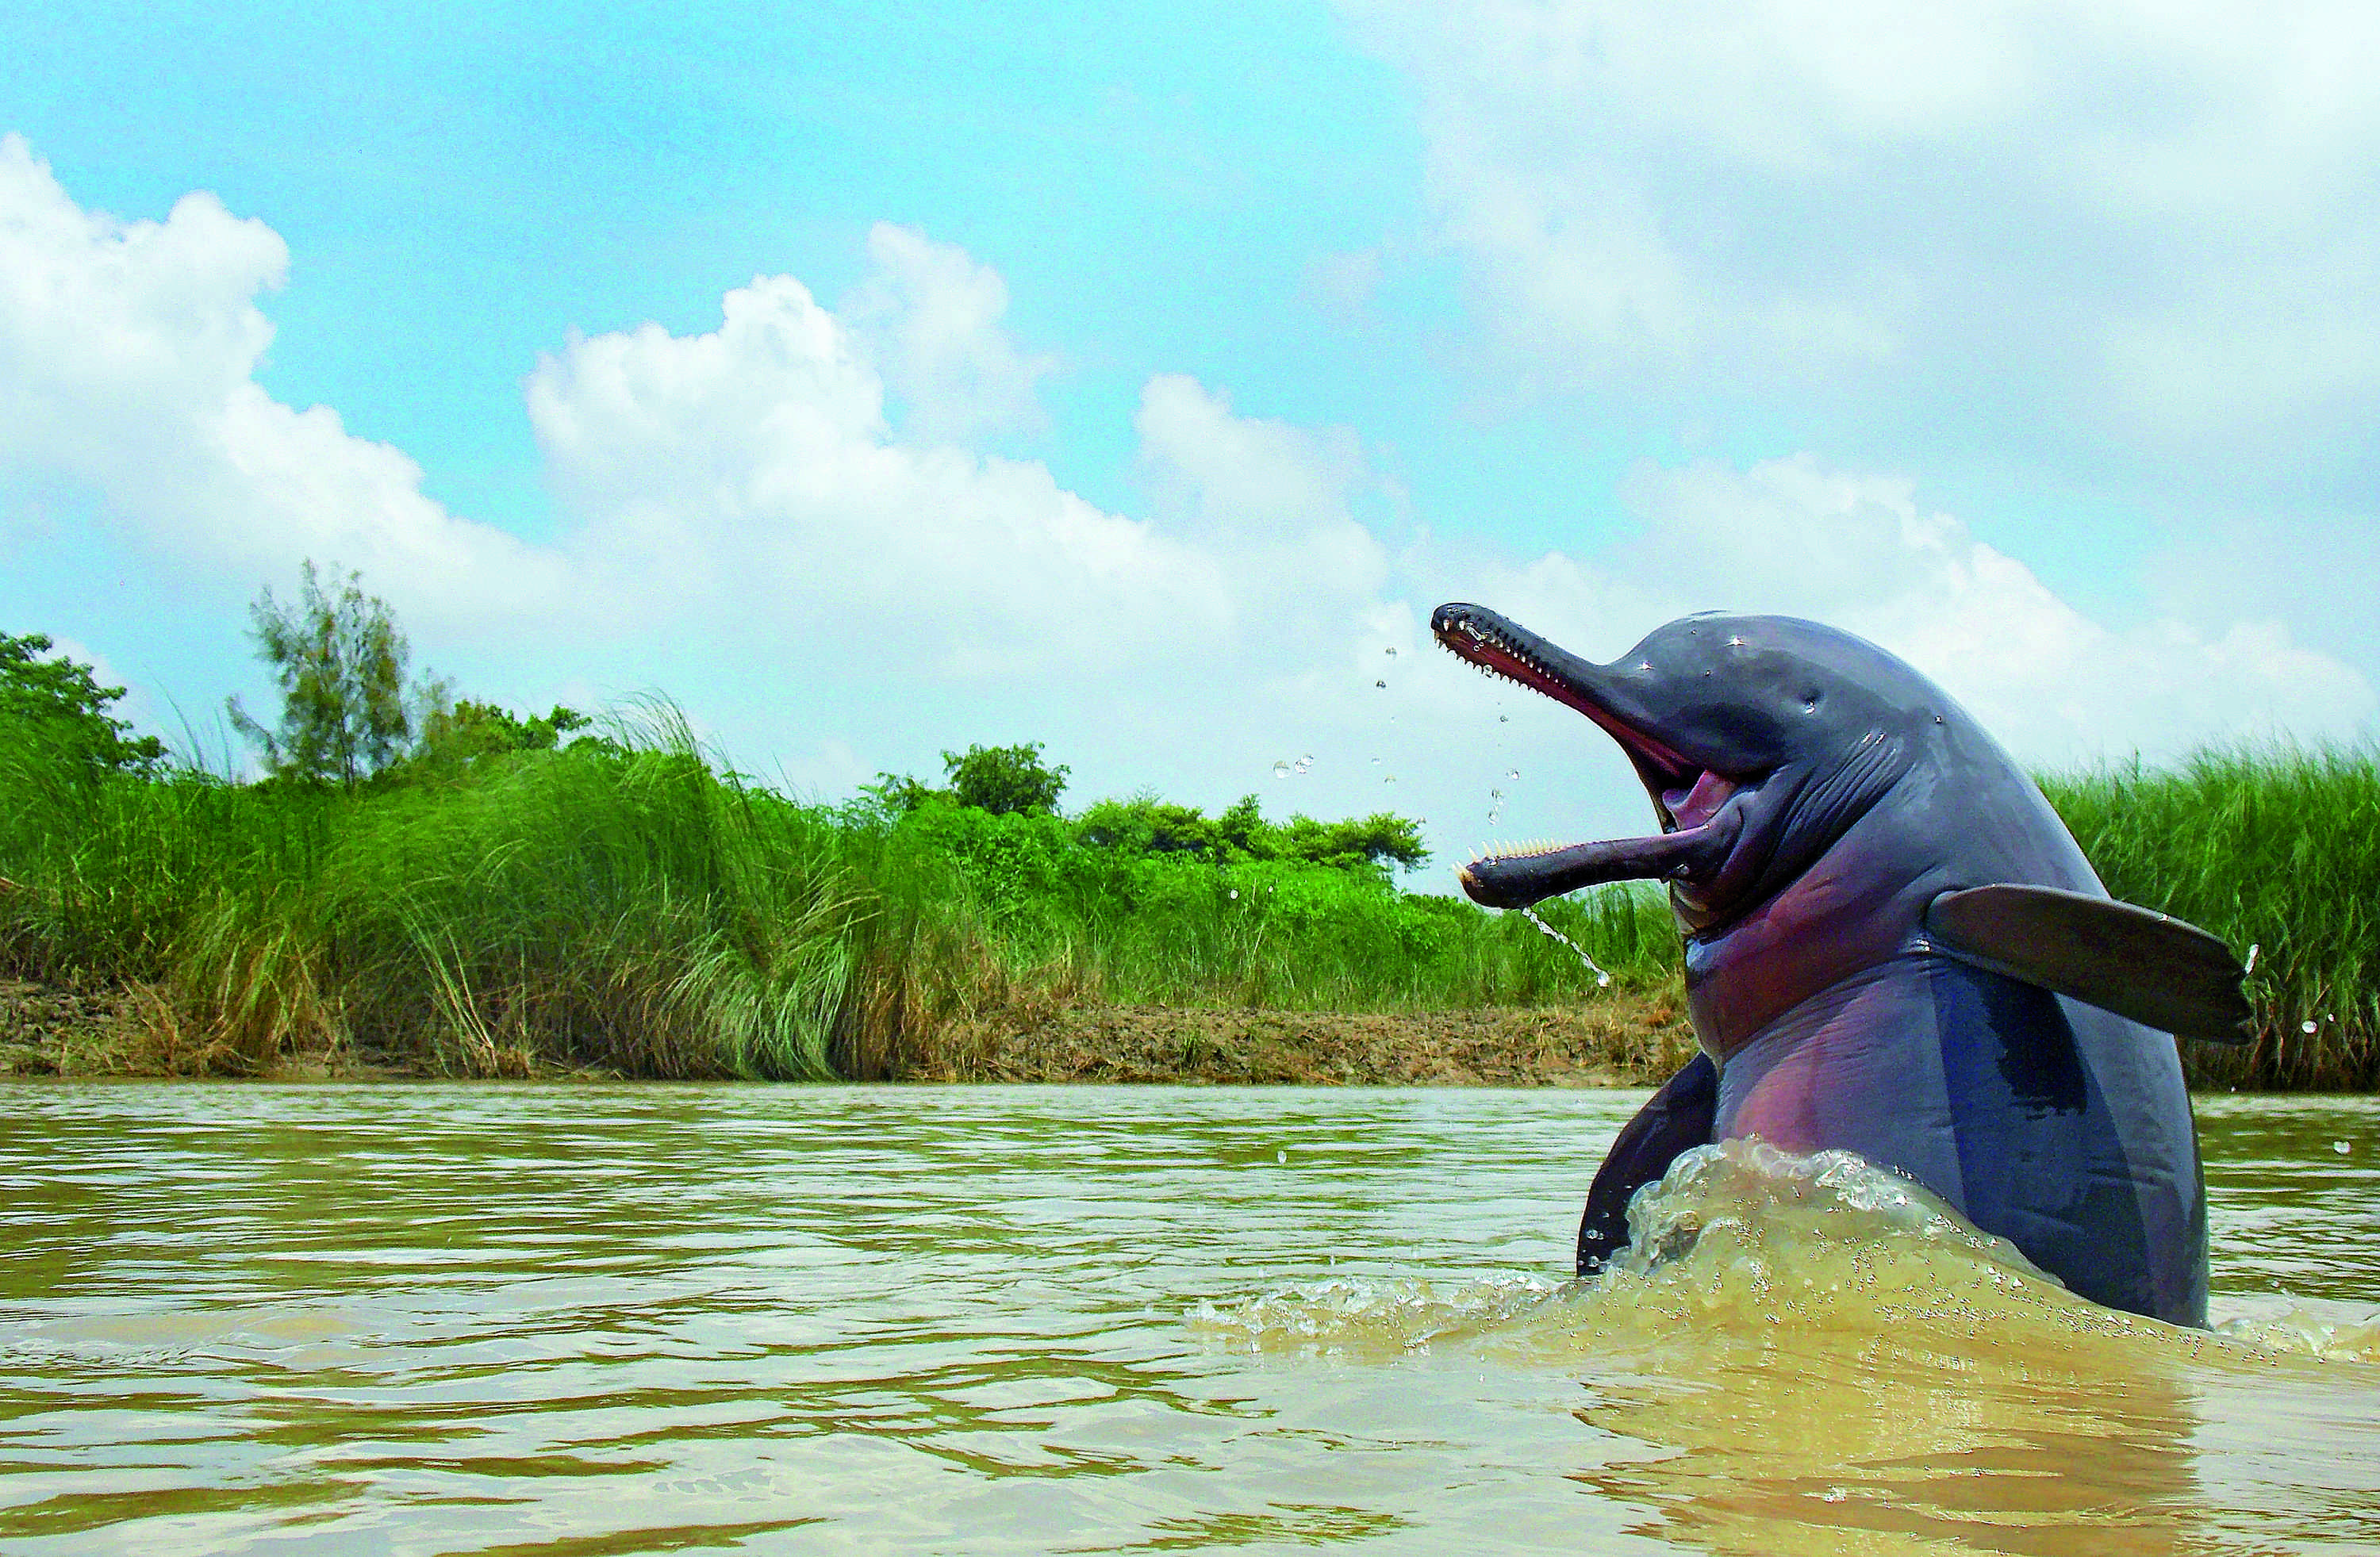 """In 'All Smiles' by Ganesh Chowdhury, the elusive Ganges river dolphin, India's national aquatic animal, makes a rare appearance. """"With both images and information being sparse, Ganesh Chowdhury's superlative portrait of a dolphin in West Bengal's Hooghly river took the judges' breath away,"""" said the note. """"This glorious picture that shows off the Ganges river dolphin's most distinct features – its thin snout, large flippers and pinhole eyes – draws attention to the decline of this endangered, misunderstood species."""" The species is classified as endangered by the IUCN, with pollution, habitat fragmentation and fishing threatening their numbers."""